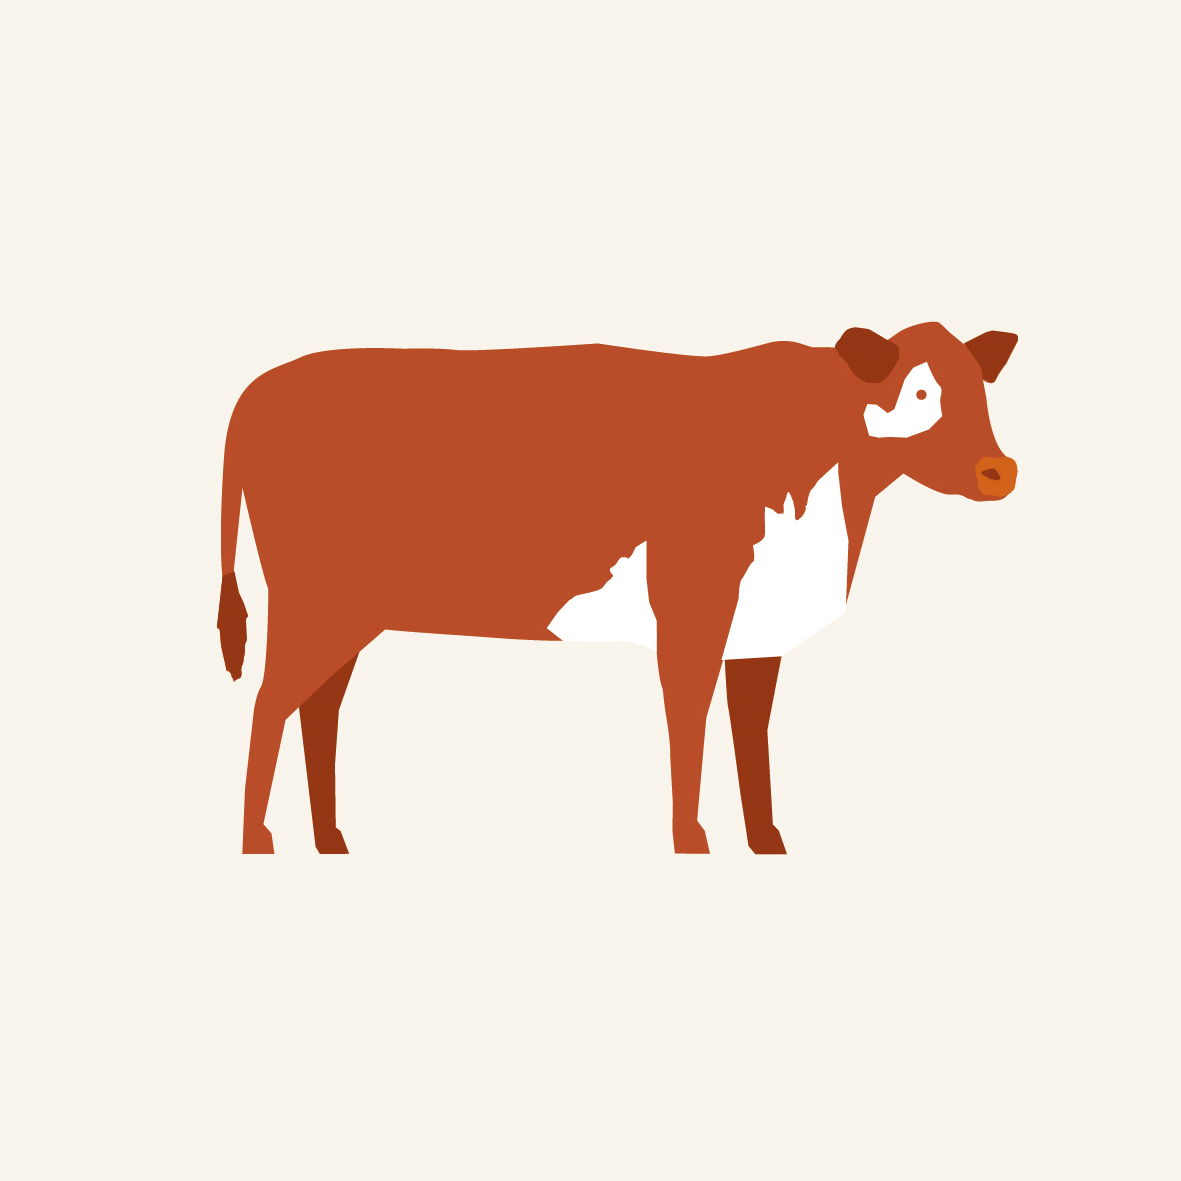 image of a cow representing beef